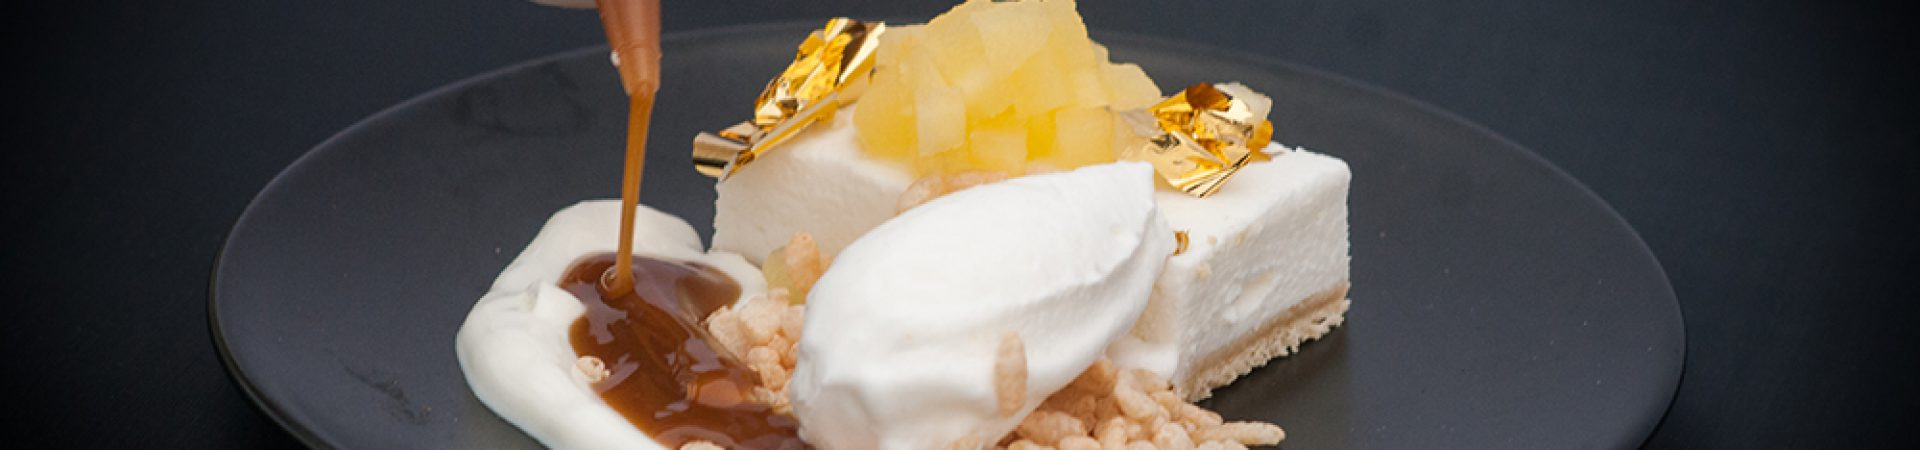 inlassing_culinaire_ambiance_golden_heritage_recept_pic